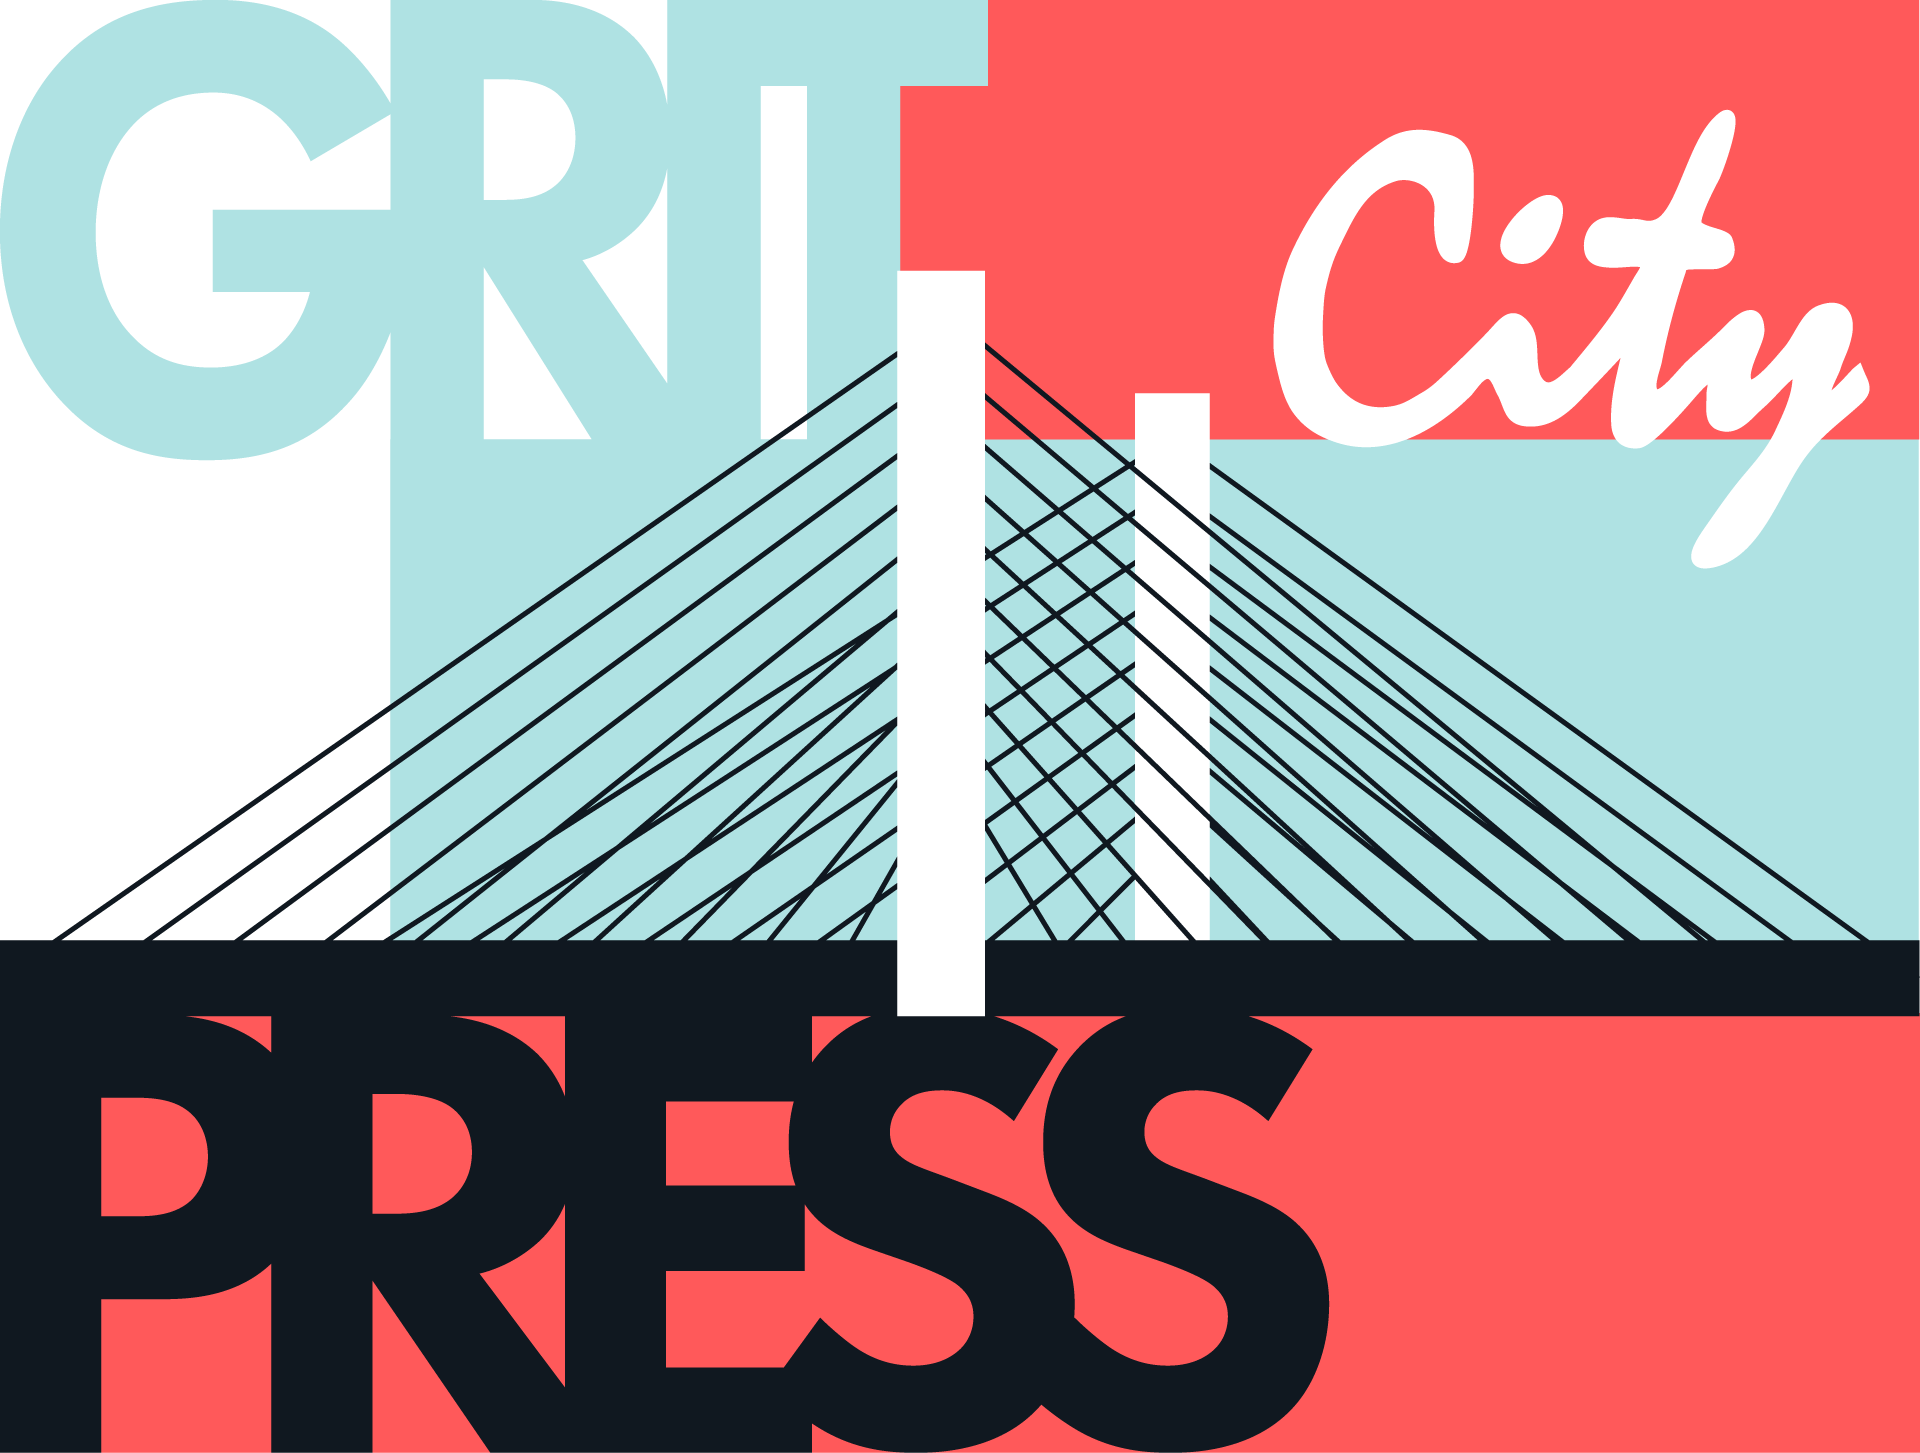 Grit City Press